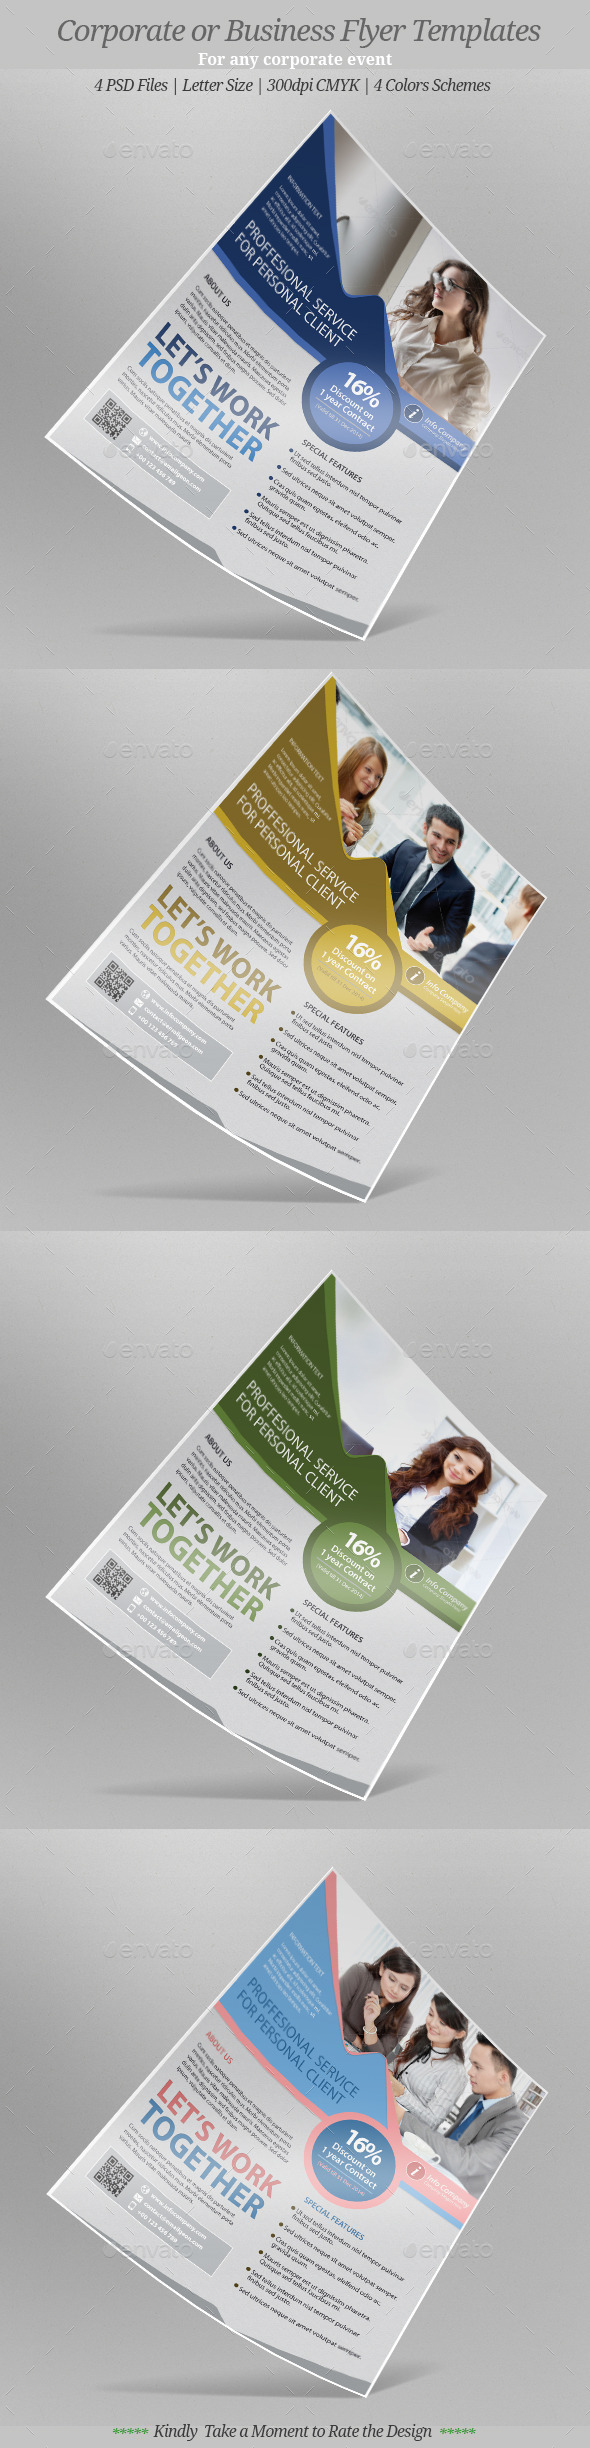 GraphicRiver Corporate or Business Flyer Templates 9641934